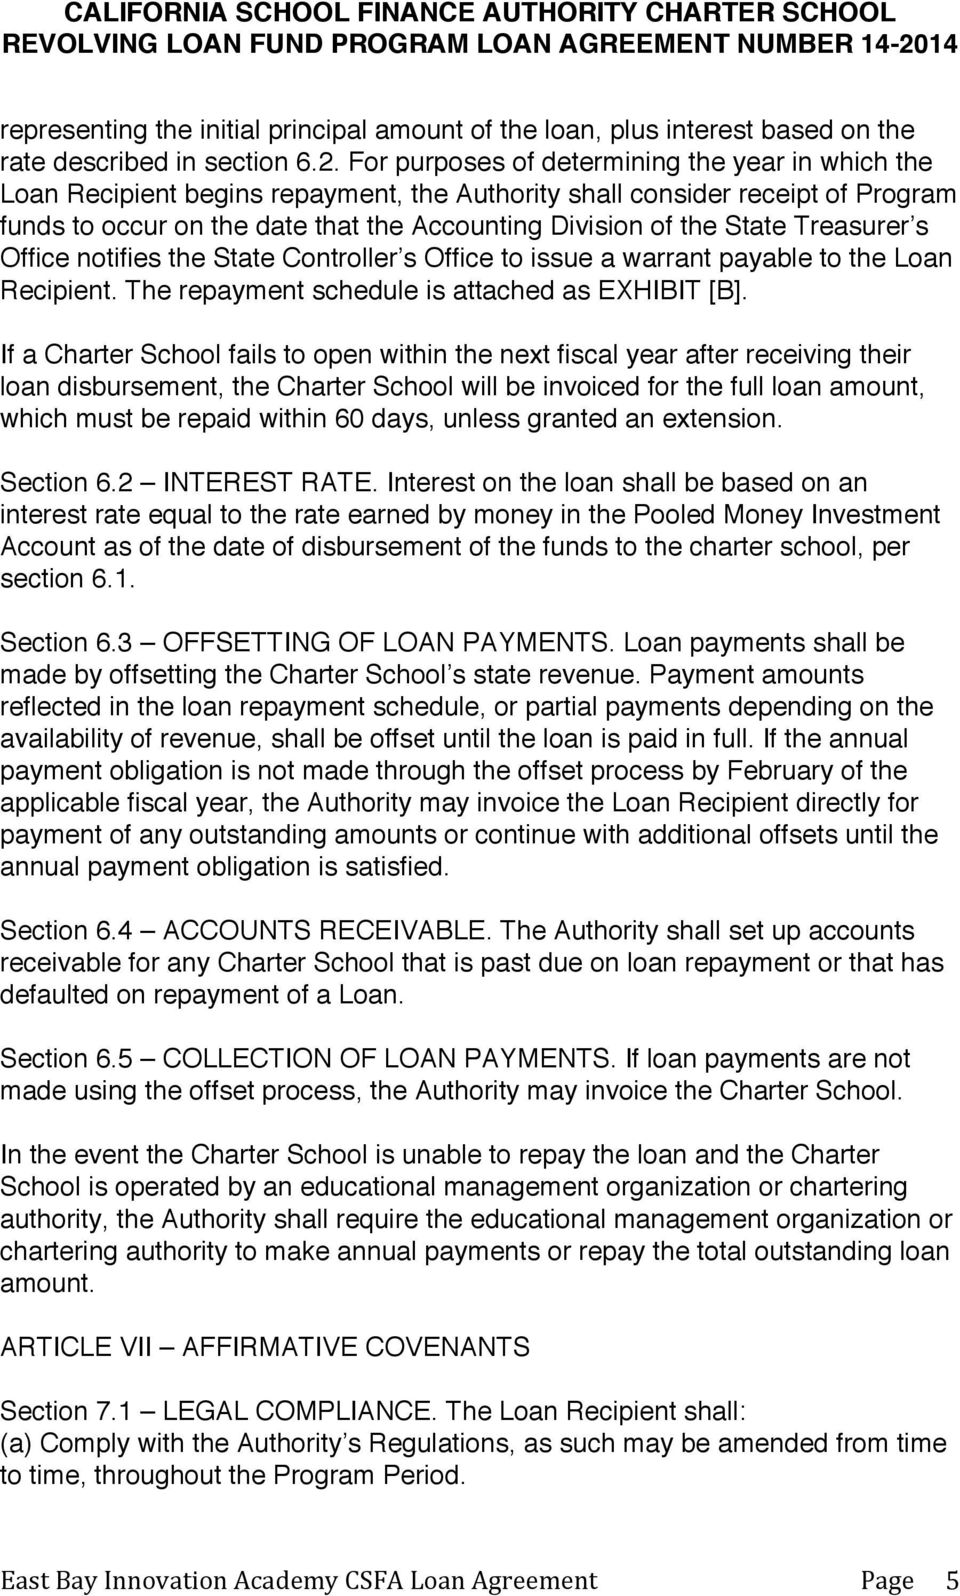 Treasurer s Office notifies the State Controller s Office to issue a warrant payable to the Loan Recipient. The repayment schedule is attached as EXHIBIT [B].